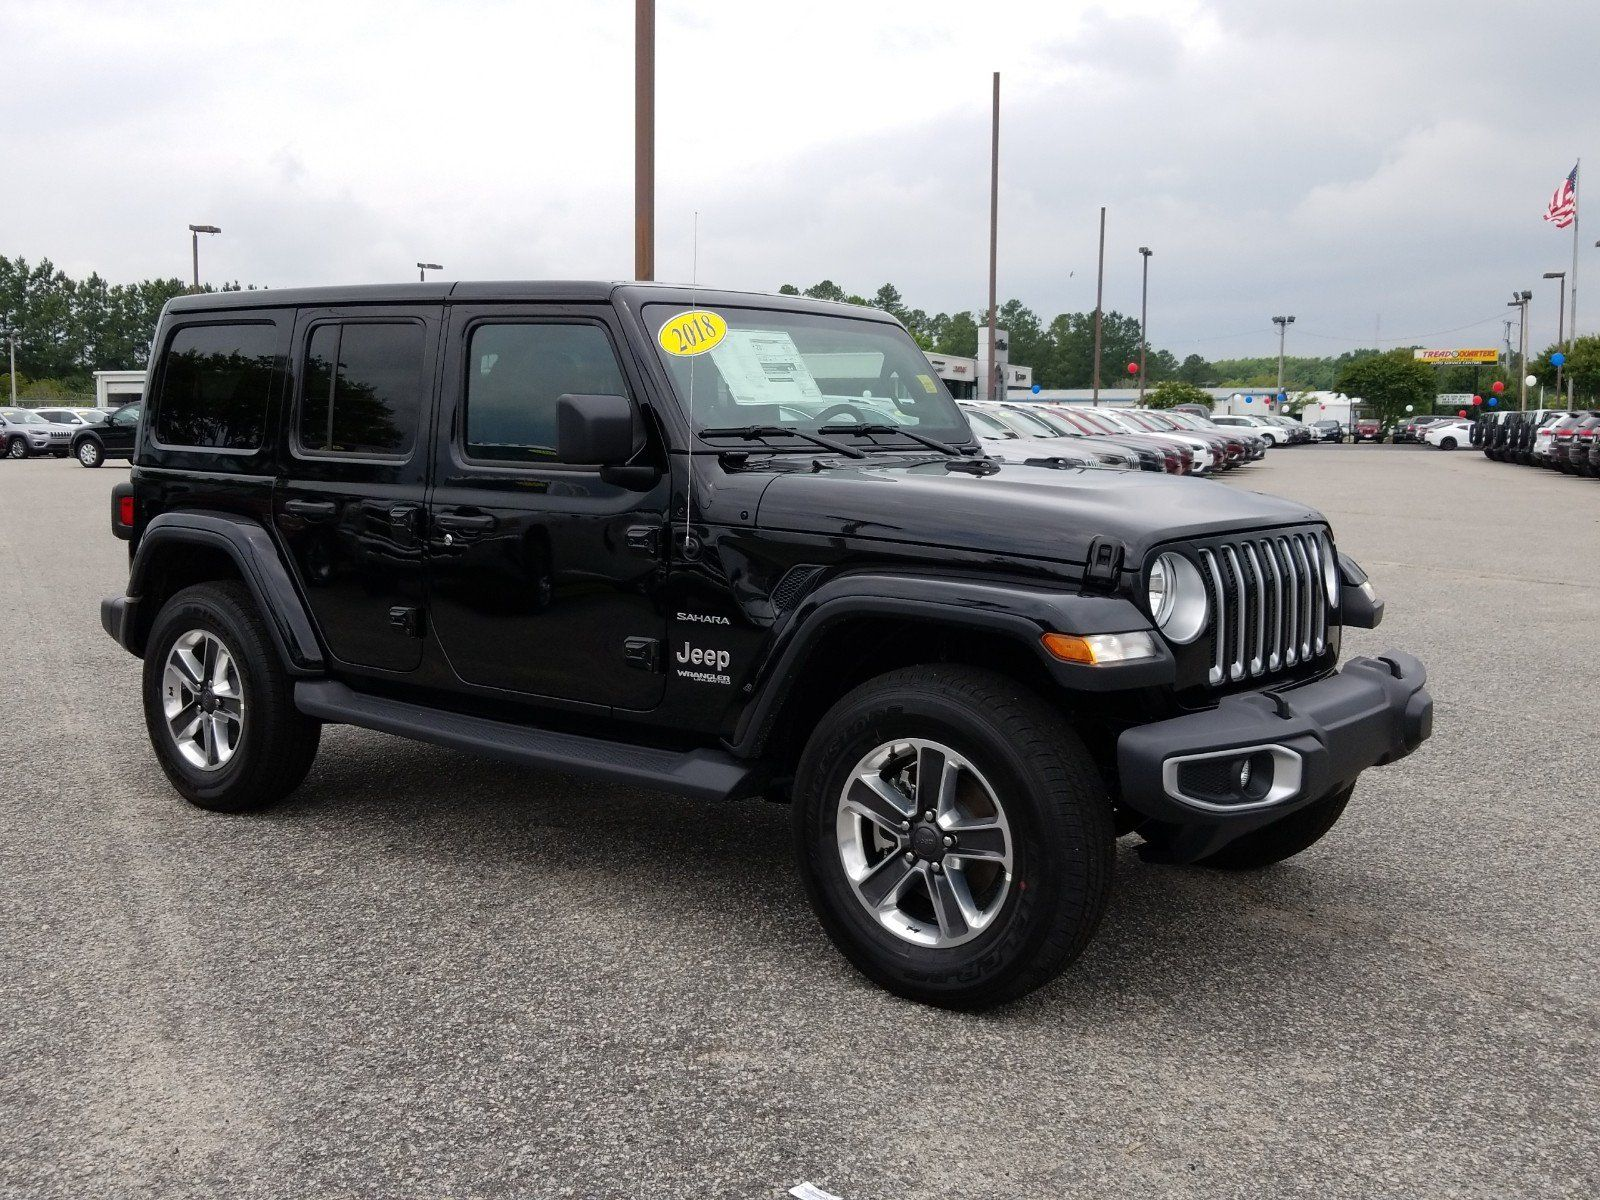 105 New Cdjr Vehicles In Stock Jeep Chrysler Dodge Jeep 2018